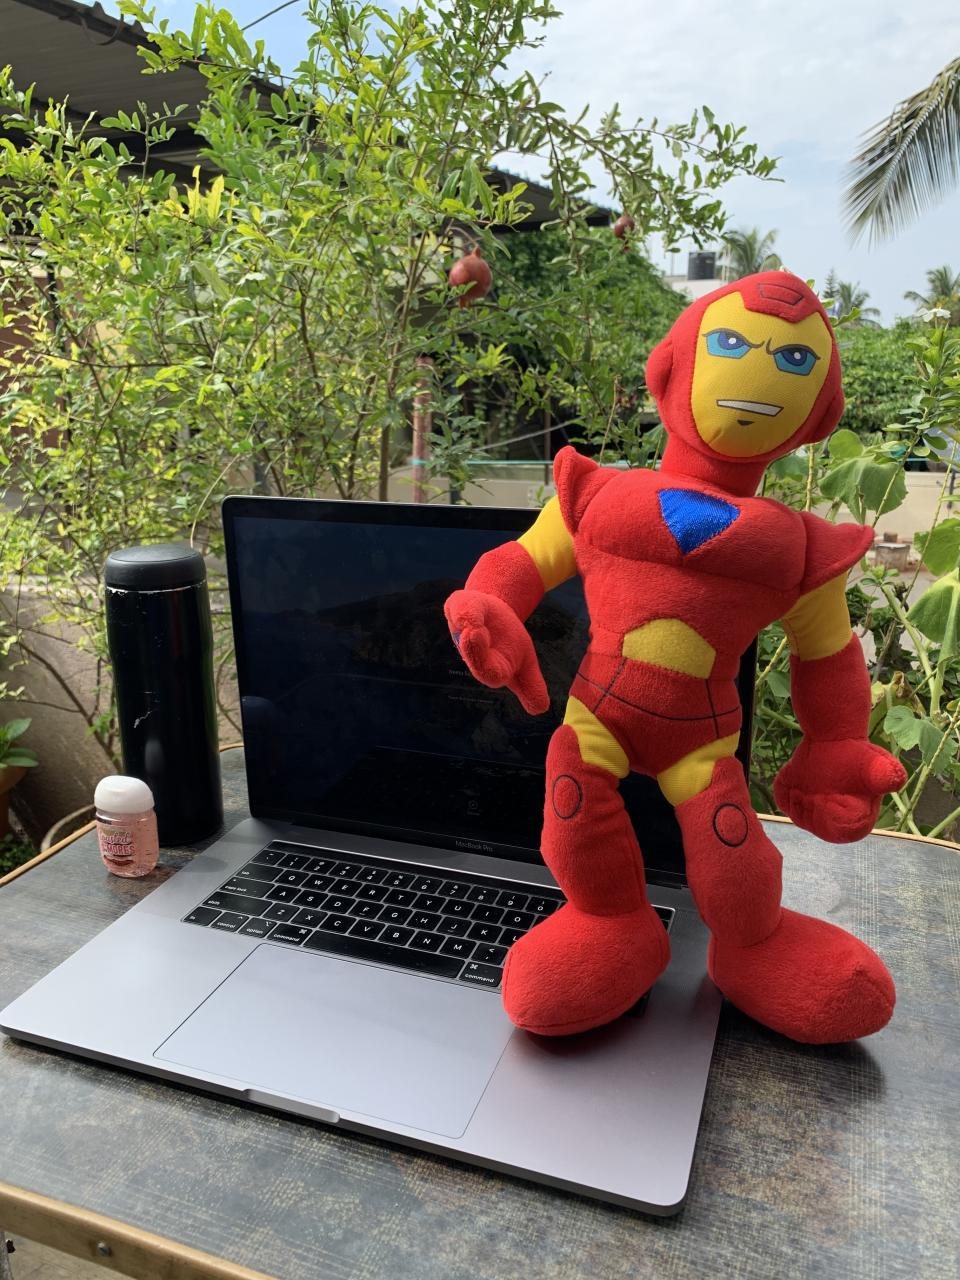 Bring your superhero/ stuff toy for company as you work from your garden <em>Photo credit:</em>